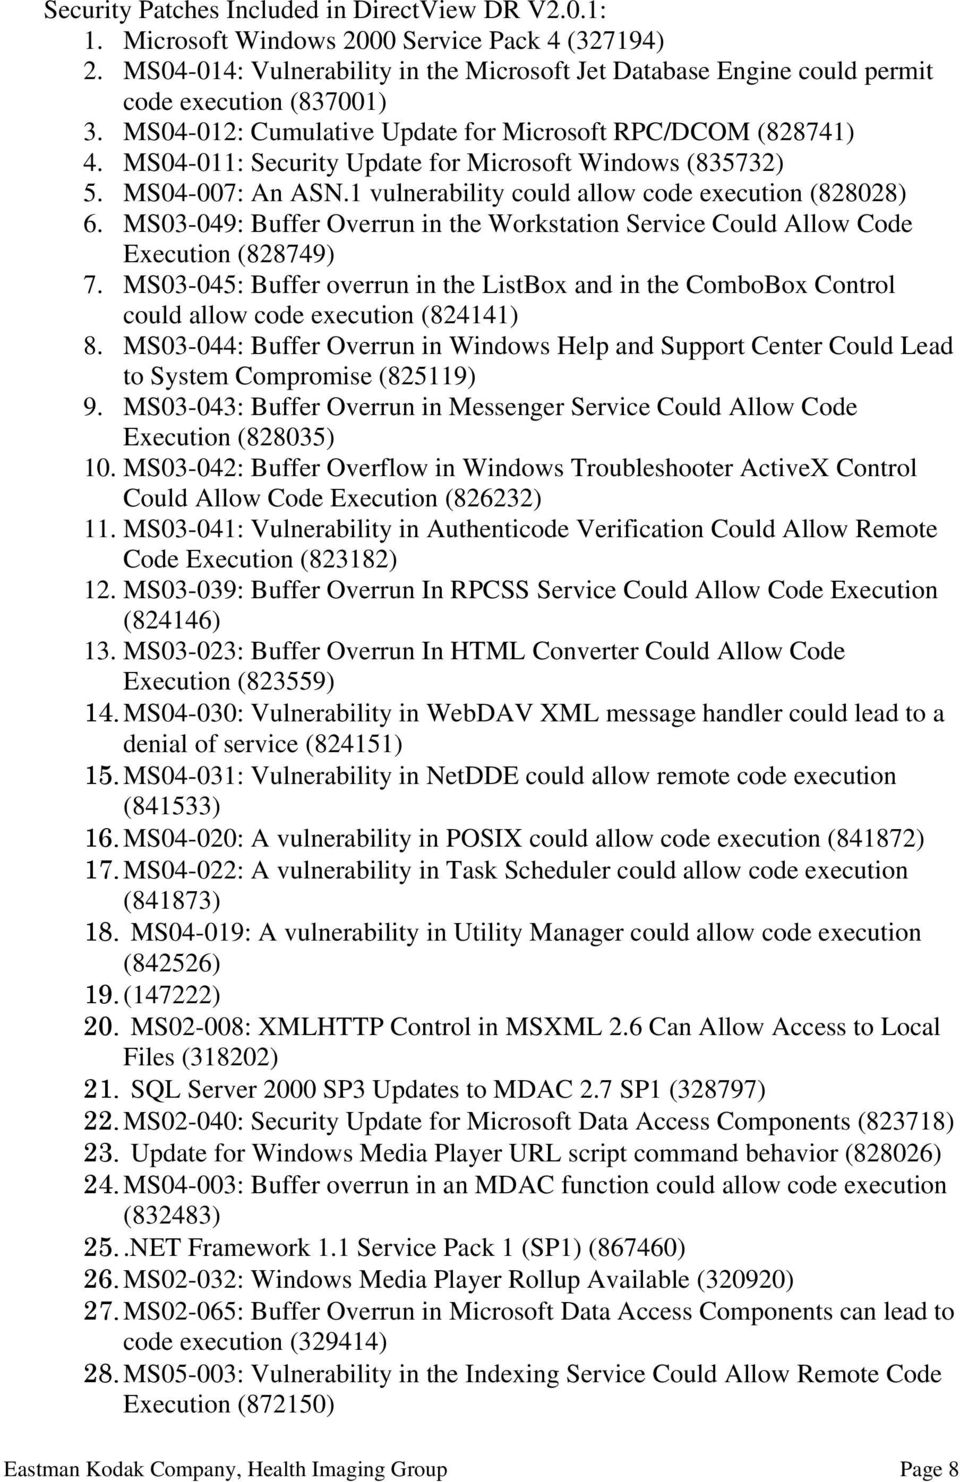 MS04-011: Security Update for Microsoft Windows (835732) 5. MS04-007: An ASN.1 vulnerability could allow code execution (828028) 6.